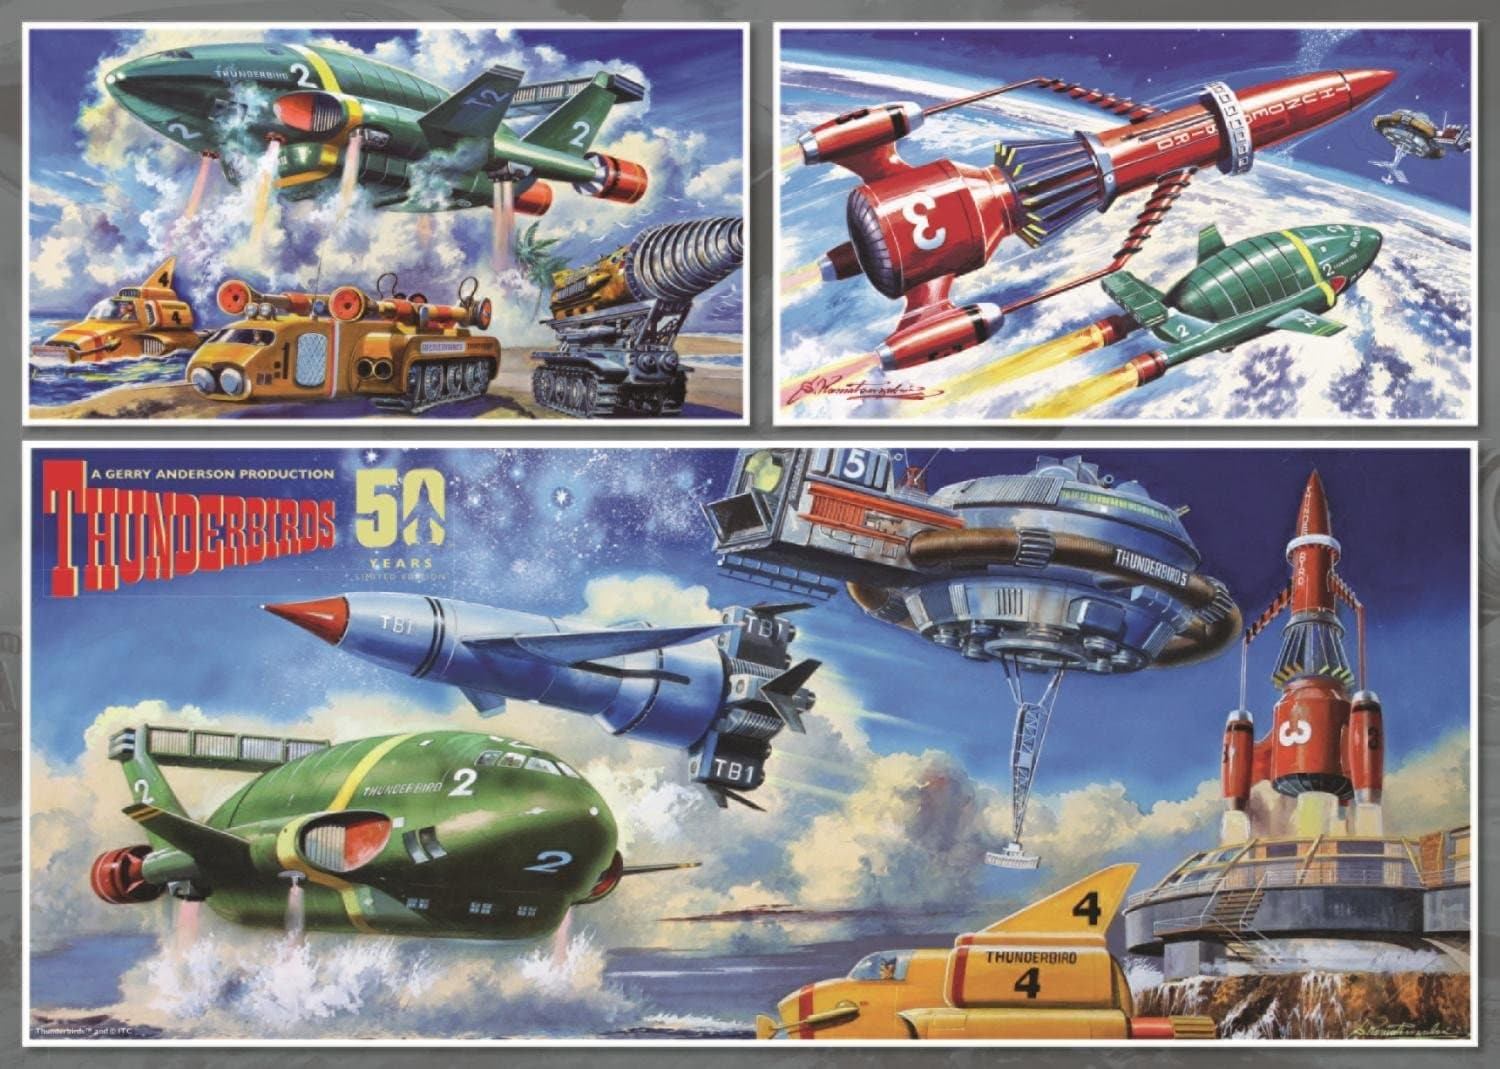 Thunderbirds Iconic Vehicles 1000 piece Jigsaw Puzzle - Gerry Anderson Official - 3